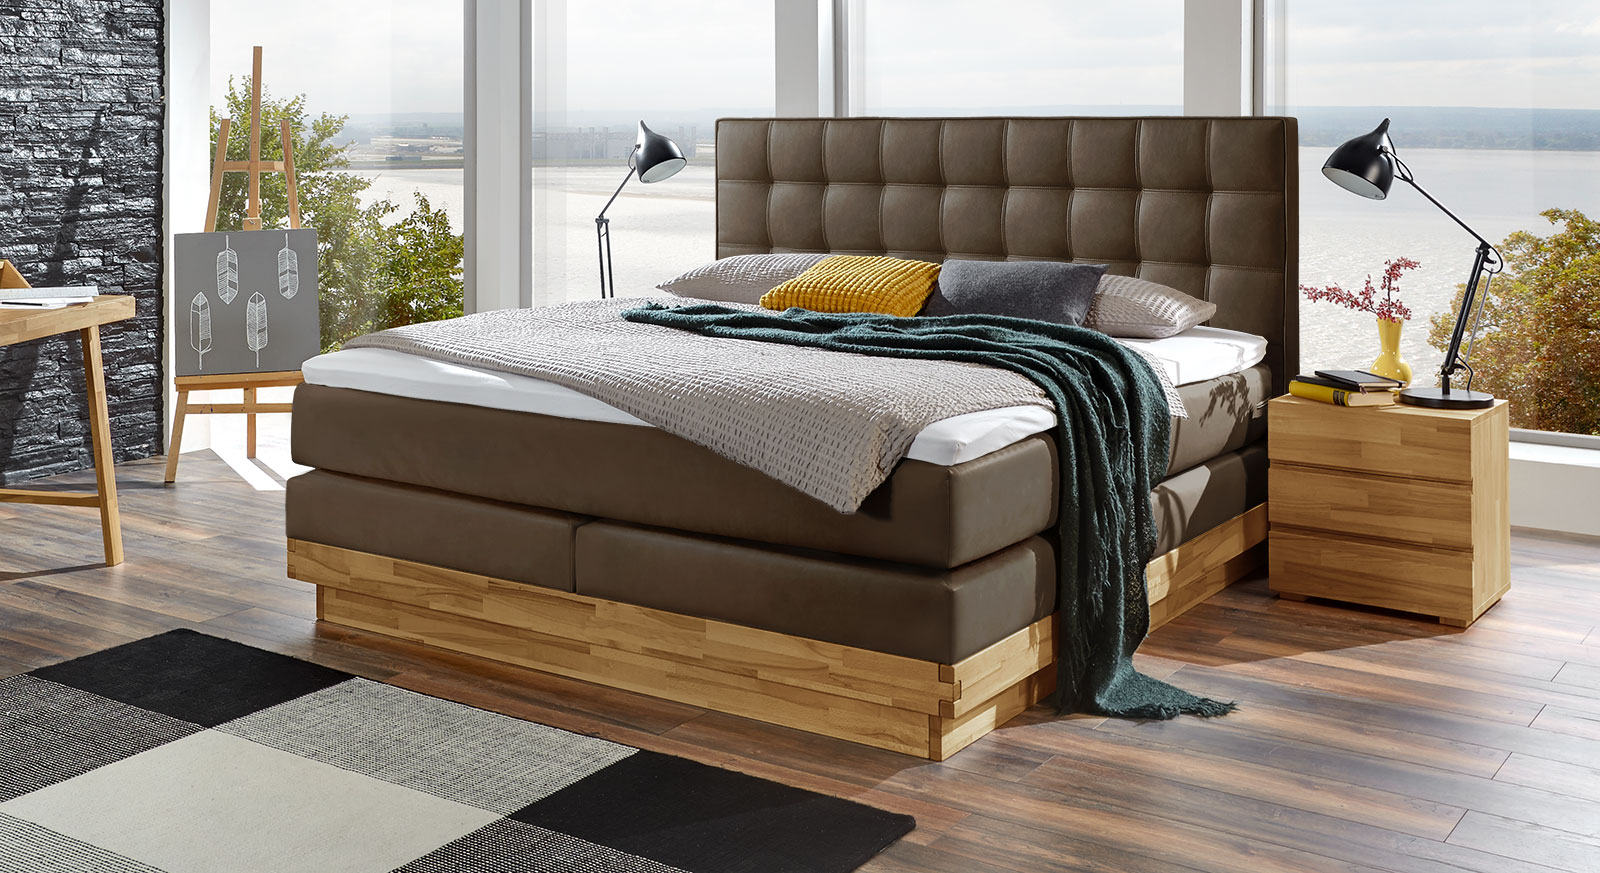 die partnerhotels probeschlafen. Black Bedroom Furniture Sets. Home Design Ideas